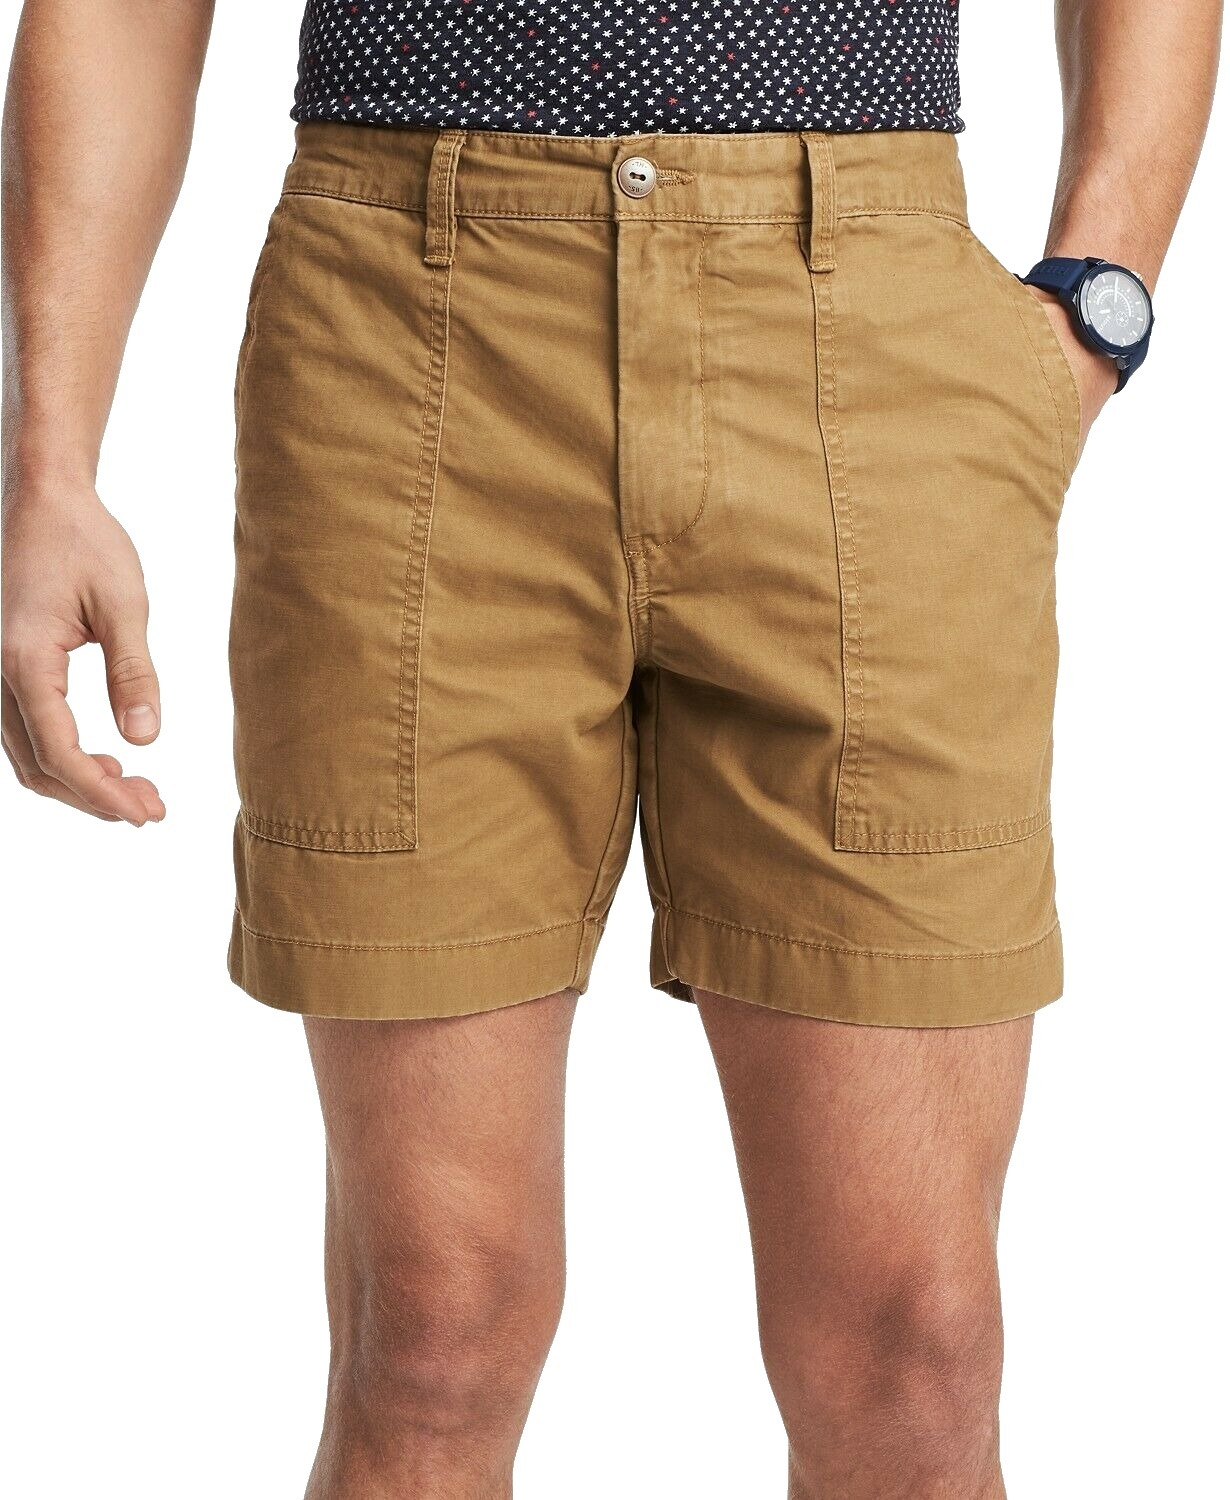 38 42 new with tags 40 Tommy Hilfiger Men Belted Cargo short size 36